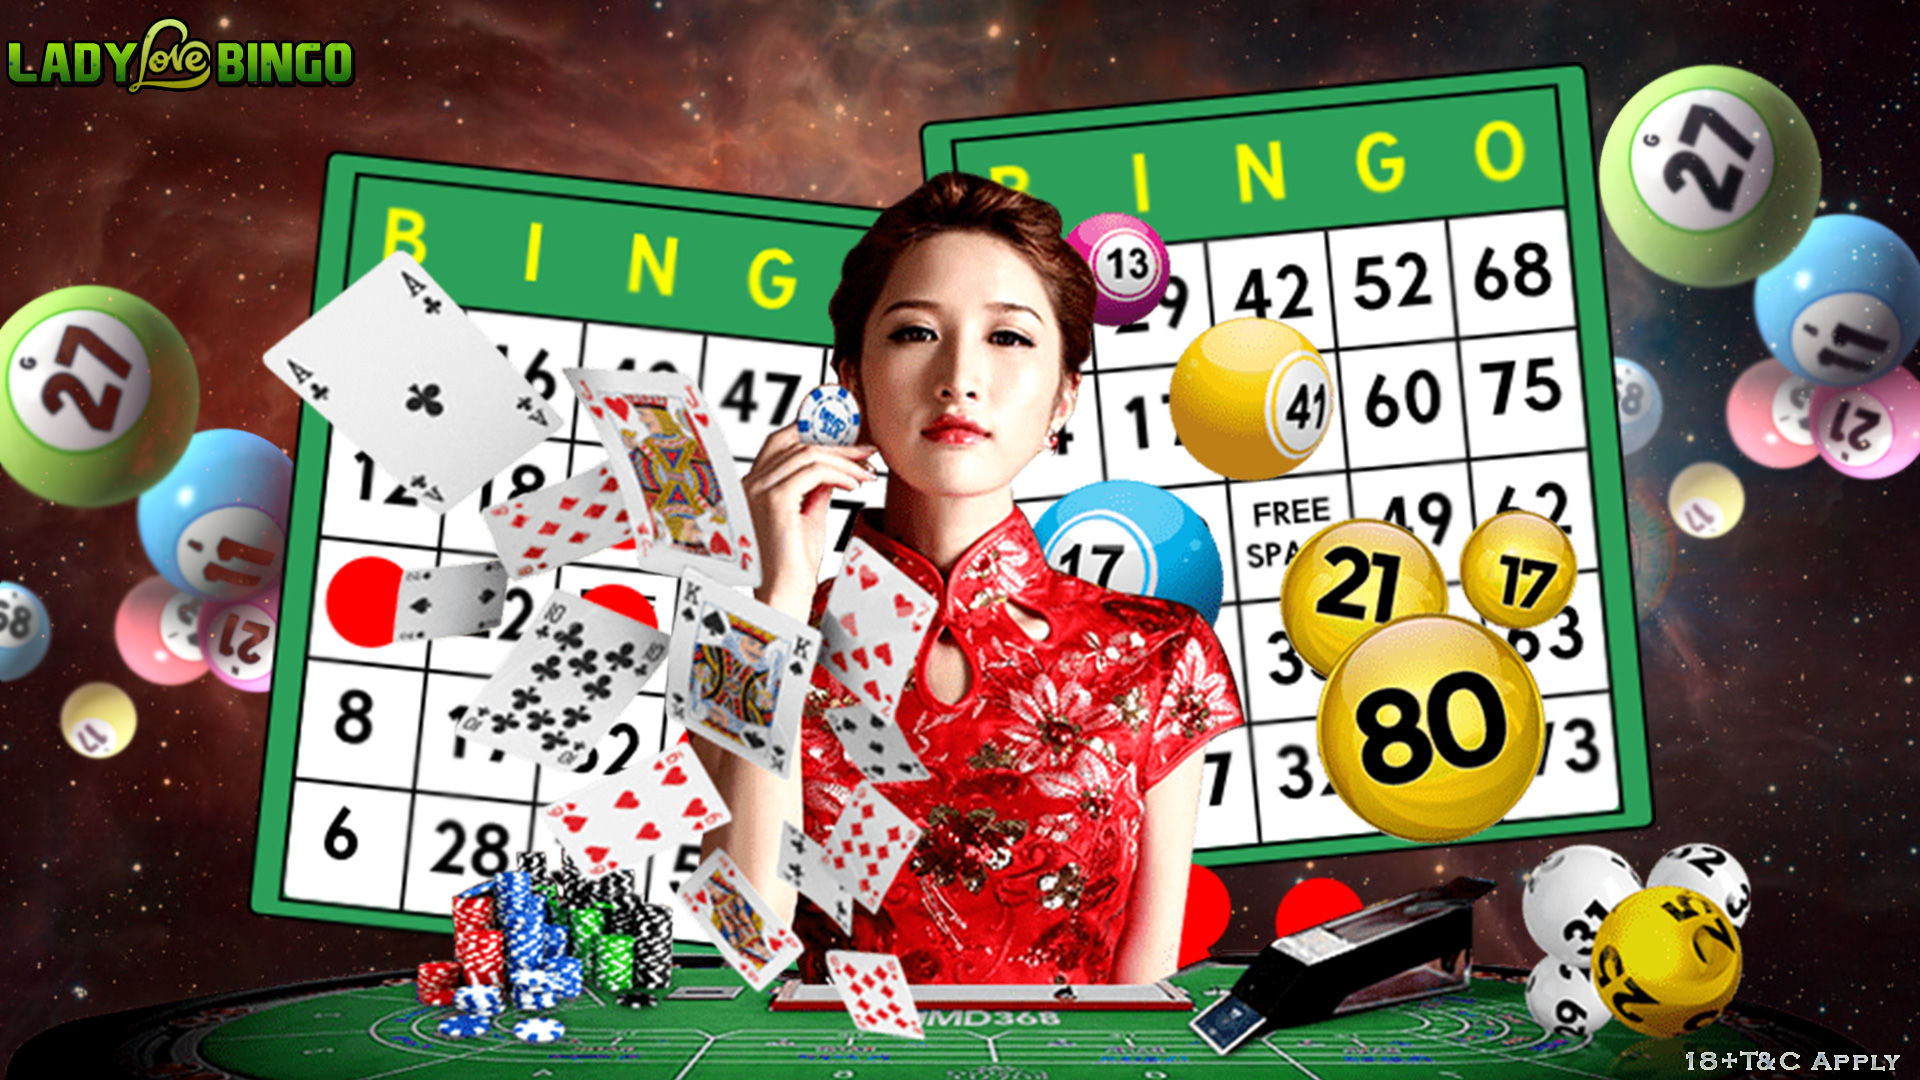 Best Portal of Online Bingo Sites UK